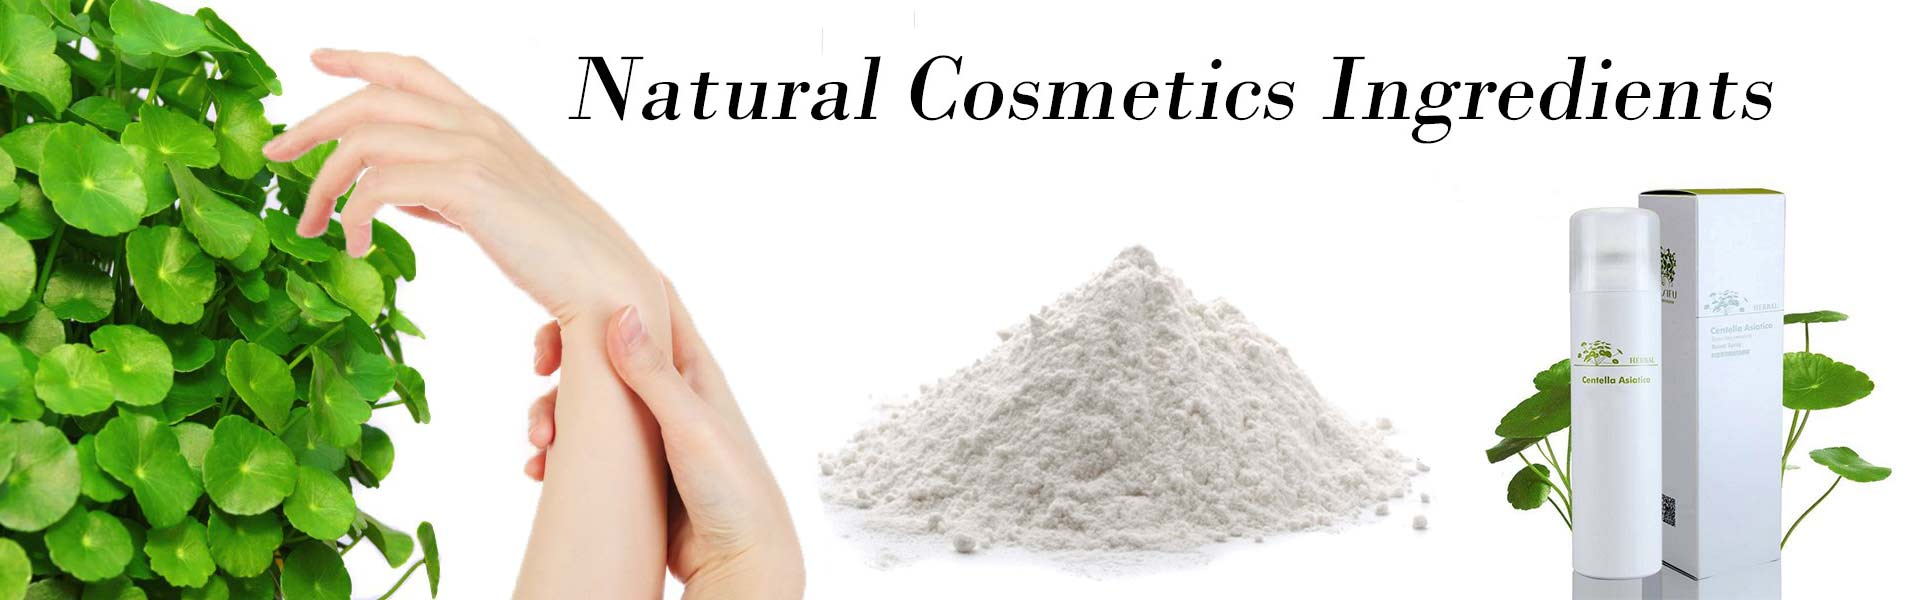 natural cosmetics ingredient